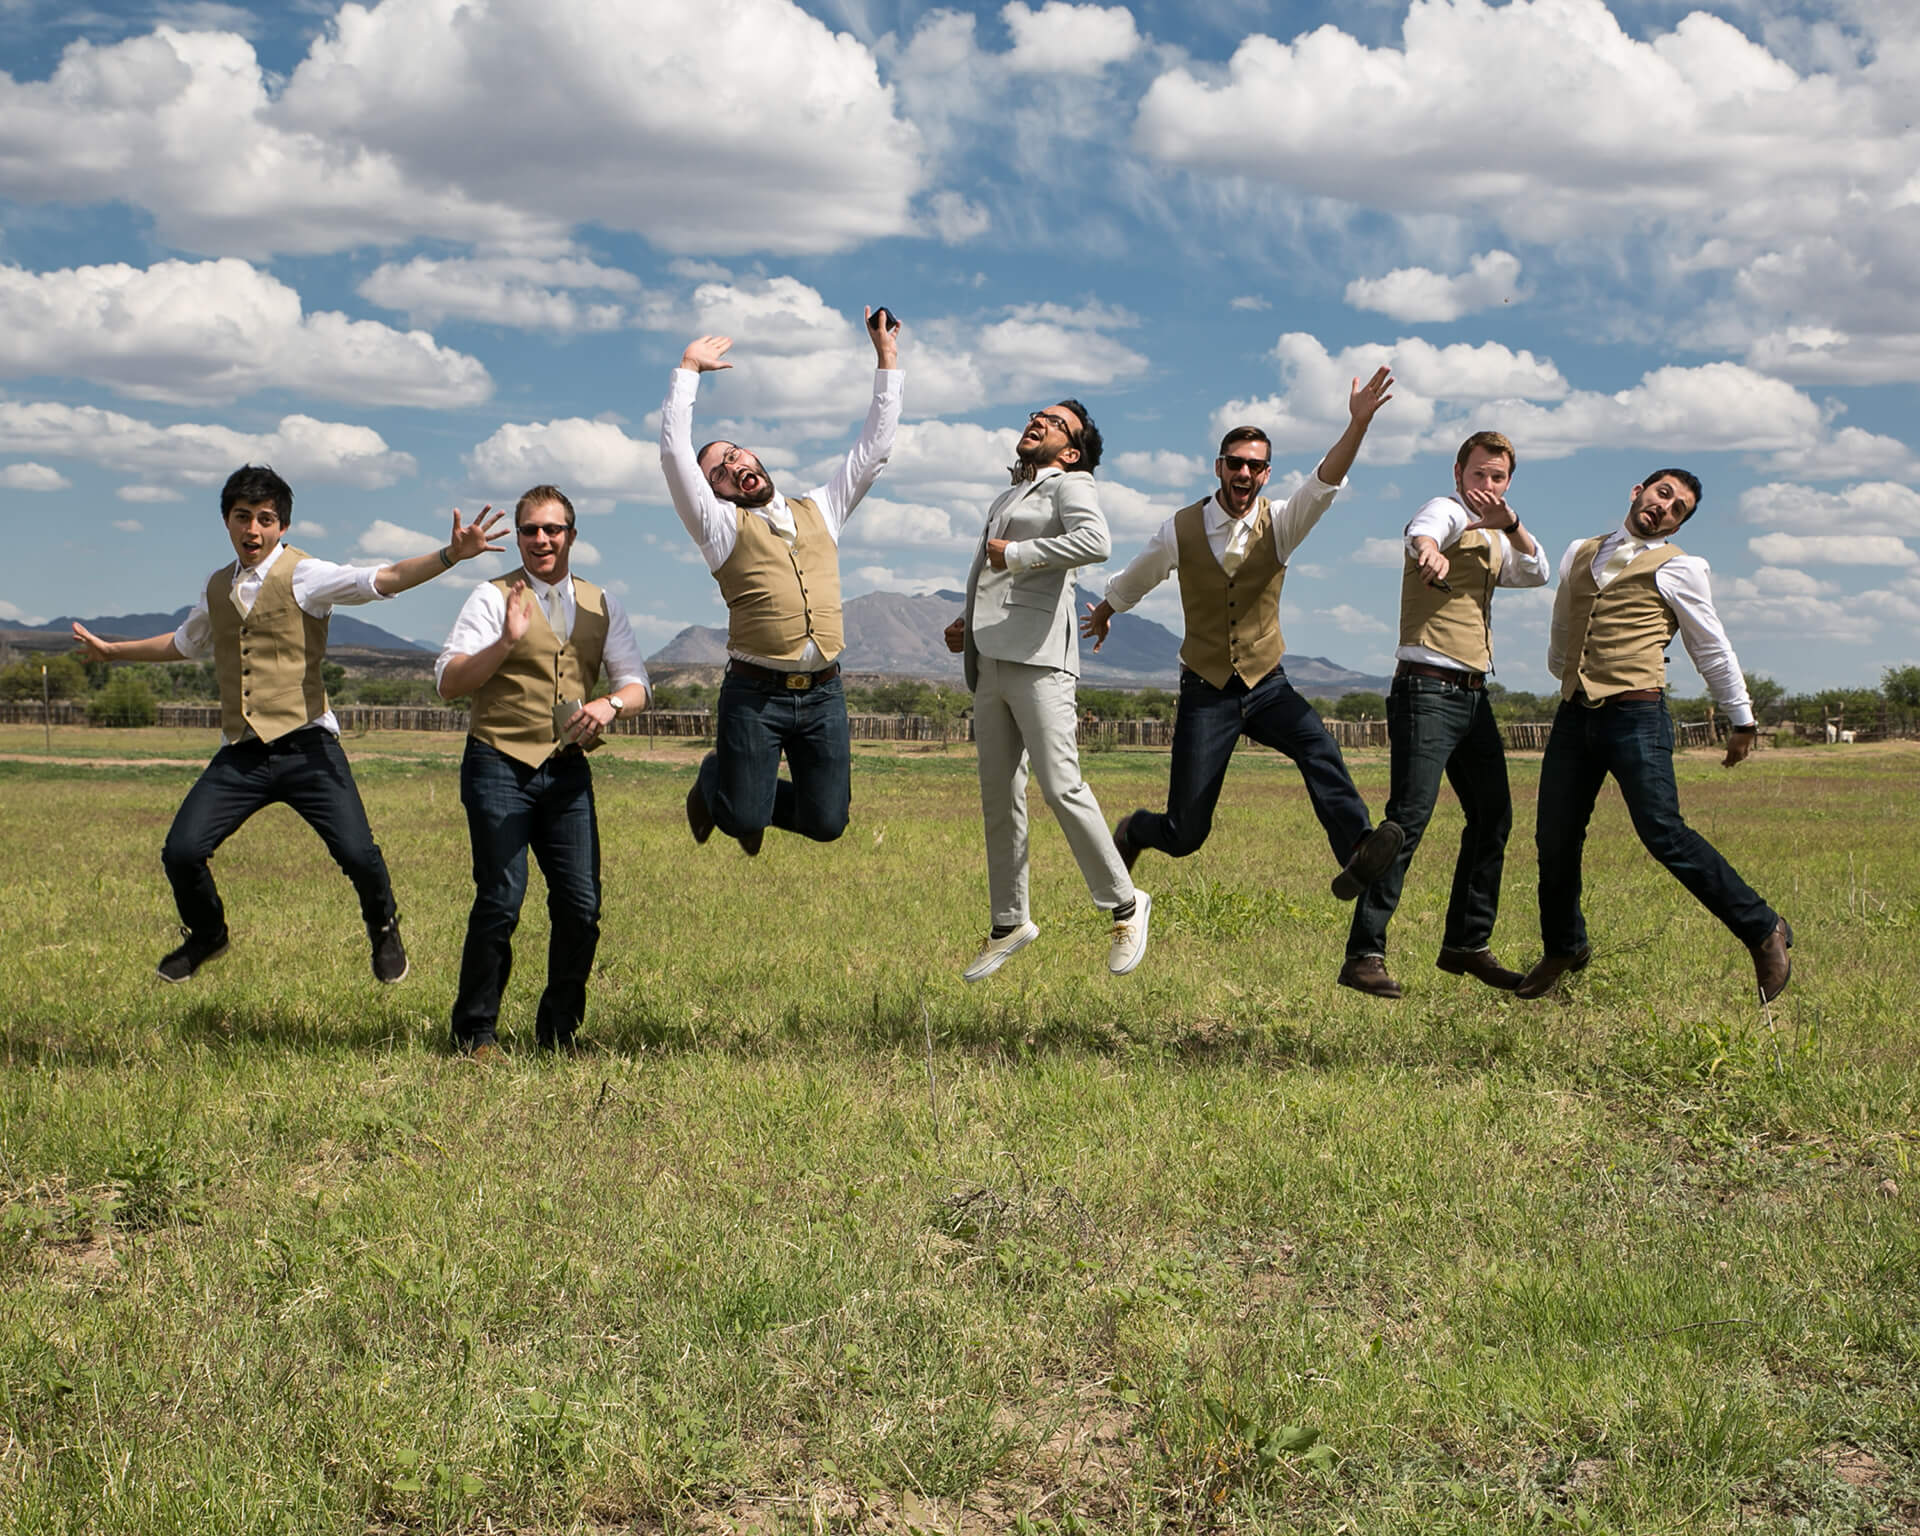 Sensing the dynamics of the group she is photographing as well as incorporating the uniqueness of the available environment, Kathleen playfully creates spontaneous portraits such as this party of groomsmen.